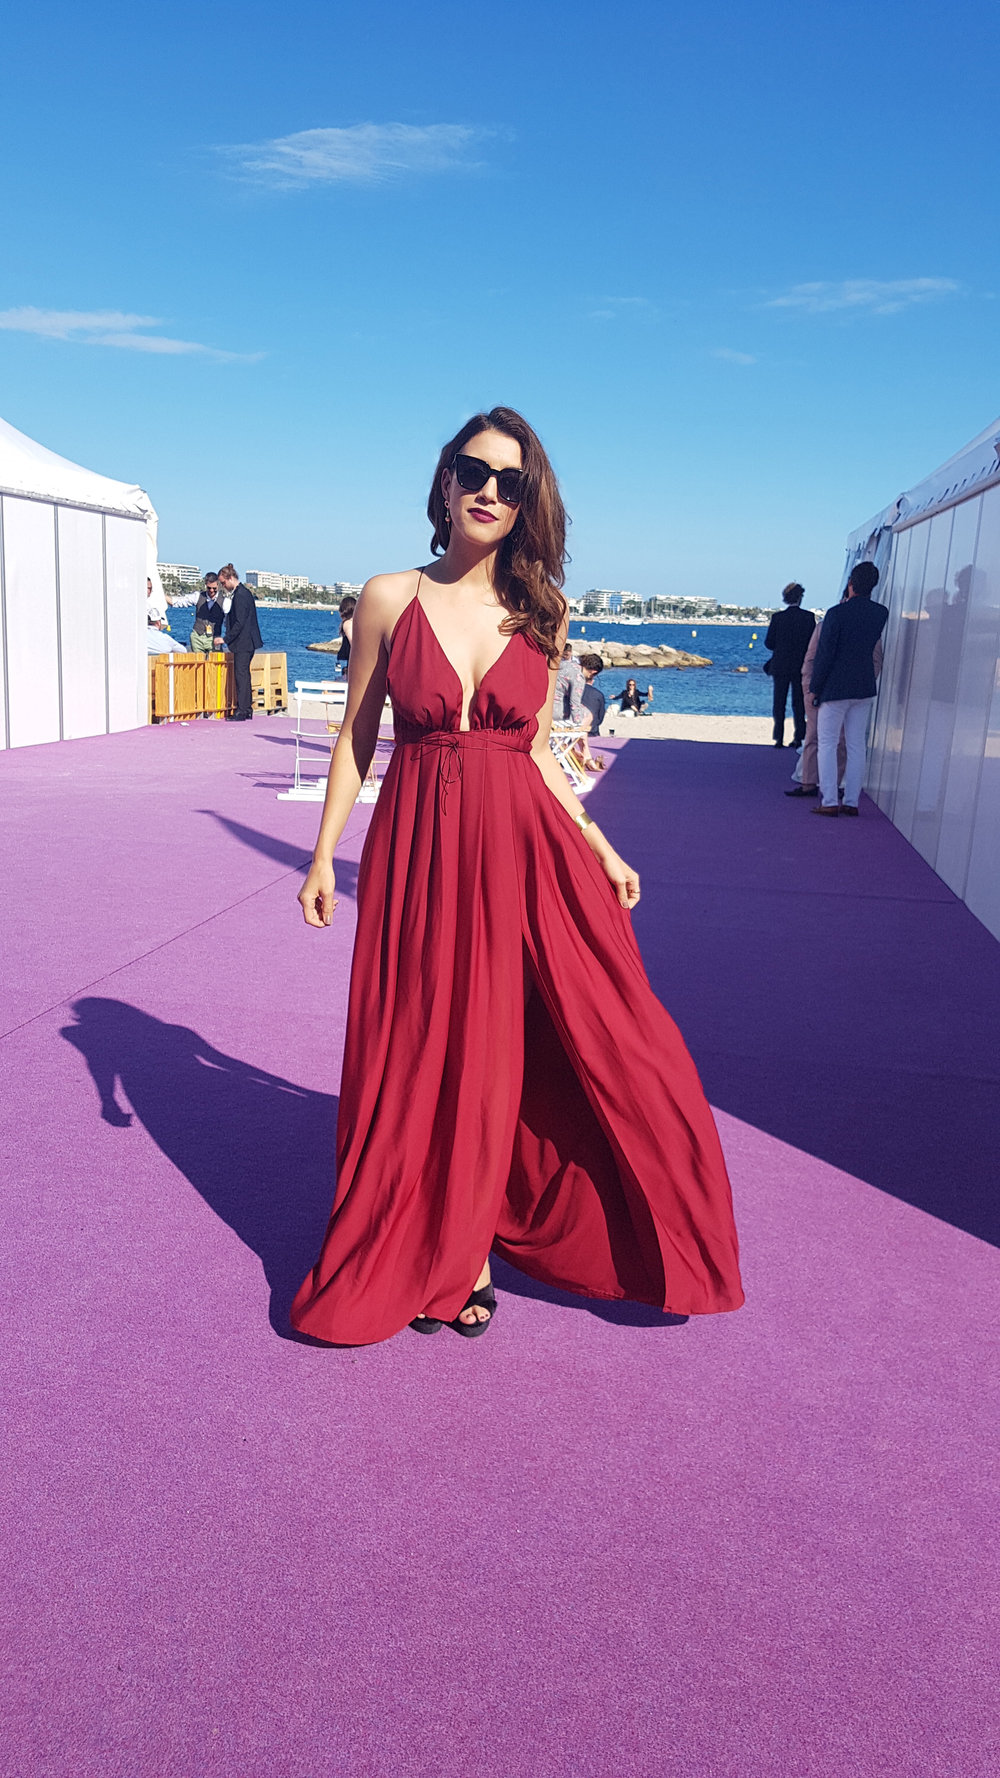 Alexandra Nell at the 71st Cannes Film Festival, attending WHITNEY by Kevin Macdonald (2018)